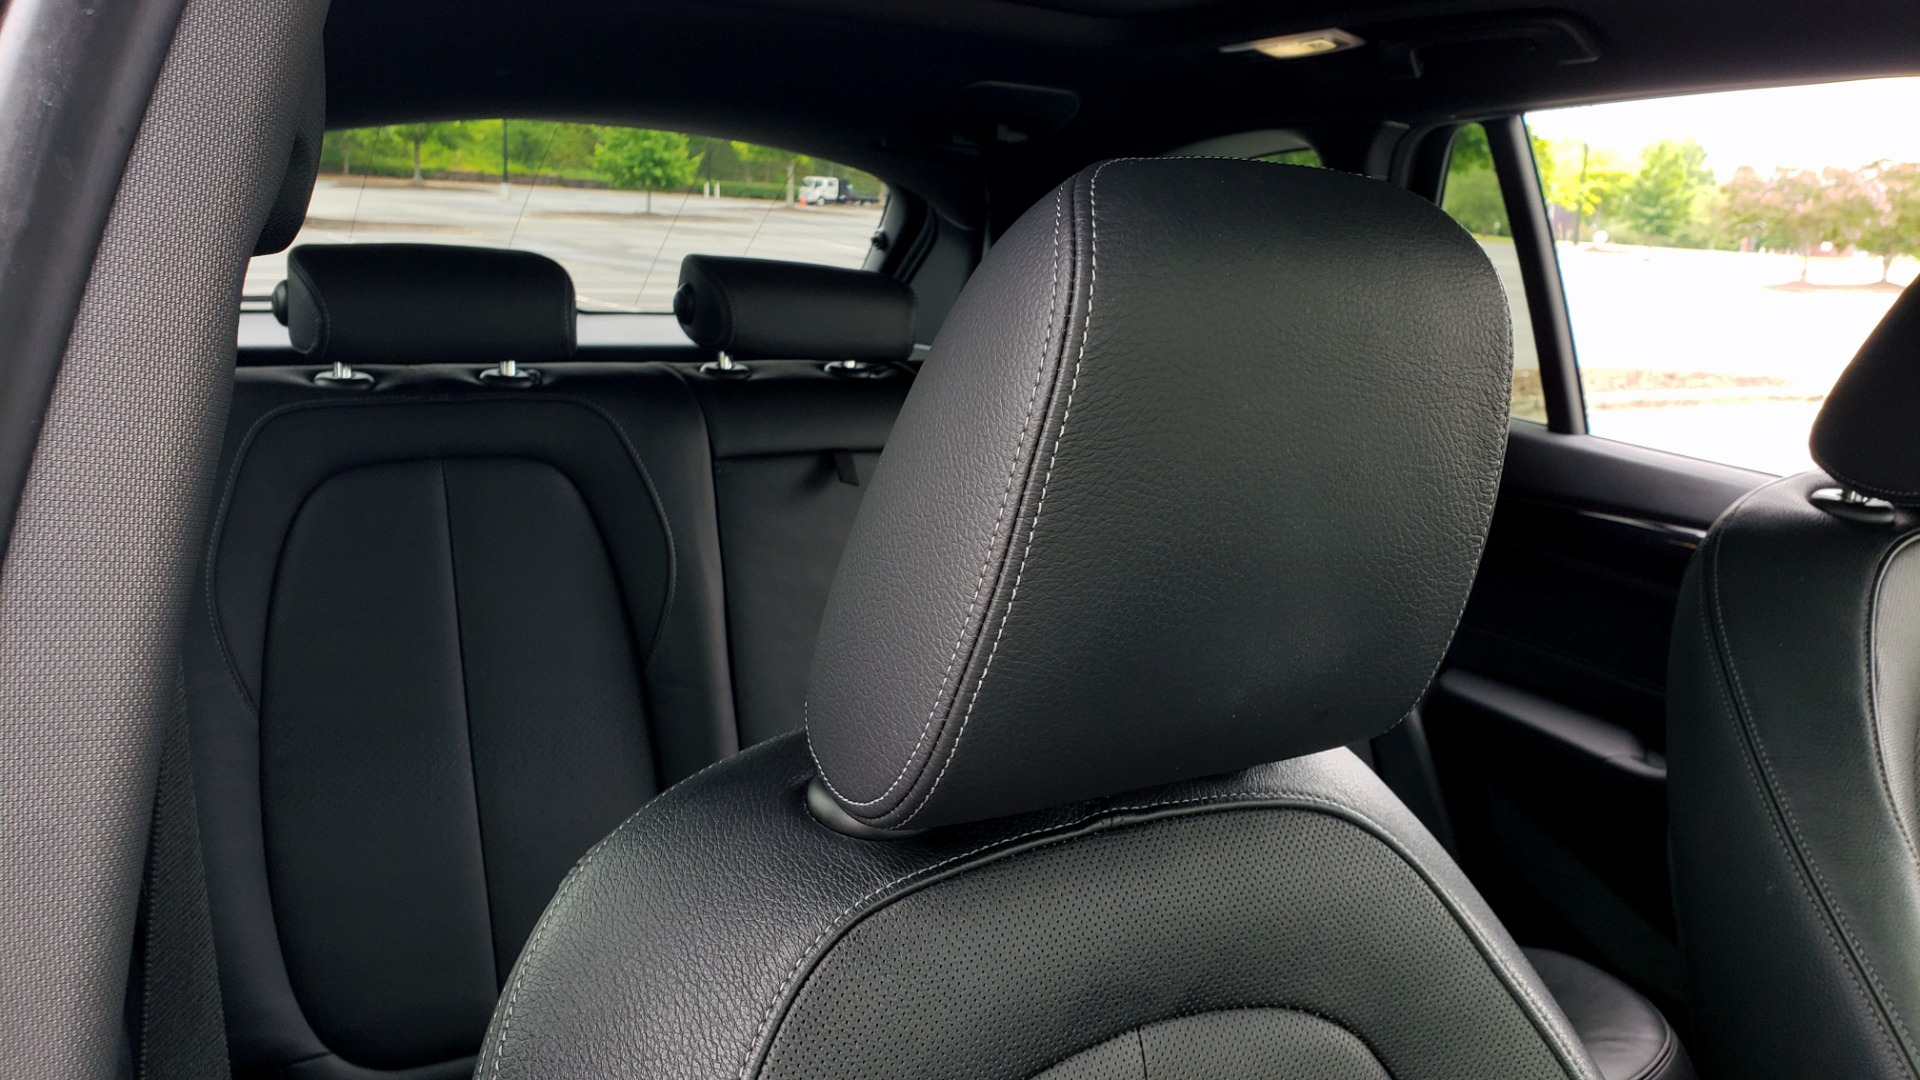 Used 2018 BMW X1 XDRIVE38I / NAV / CONV PKG / PANO-ROOF / HTD STS / REARVIEW for sale $28,995 at Formula Imports in Charlotte NC 28227 62